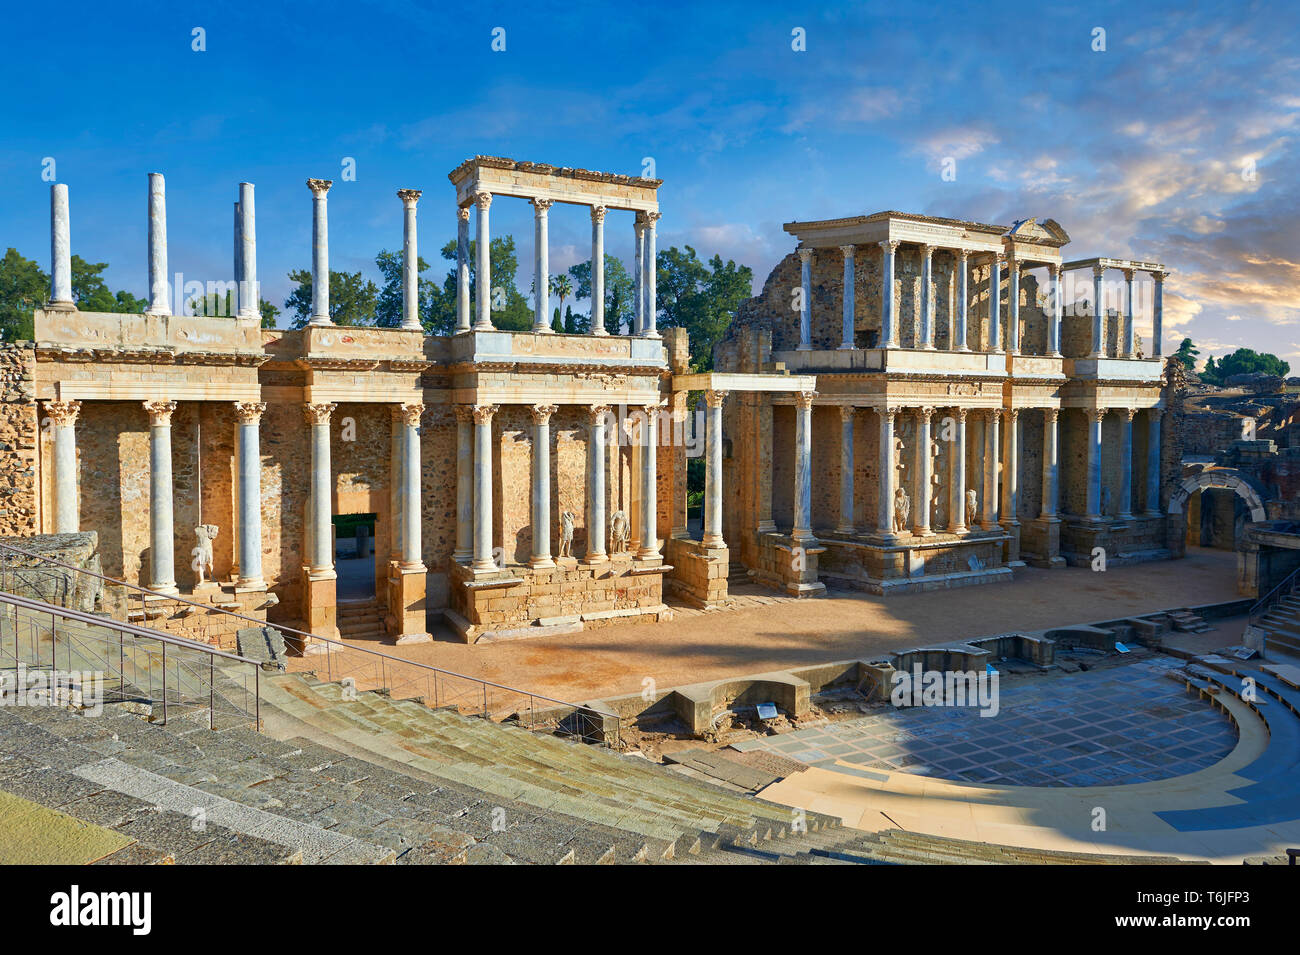 Roman theatre of the Roman colony of Emerita Augusta (Mérida) dedicated by the consul Marcus Vipsanius Agrippa and built in 15BC, Merida Spain - Stock Image